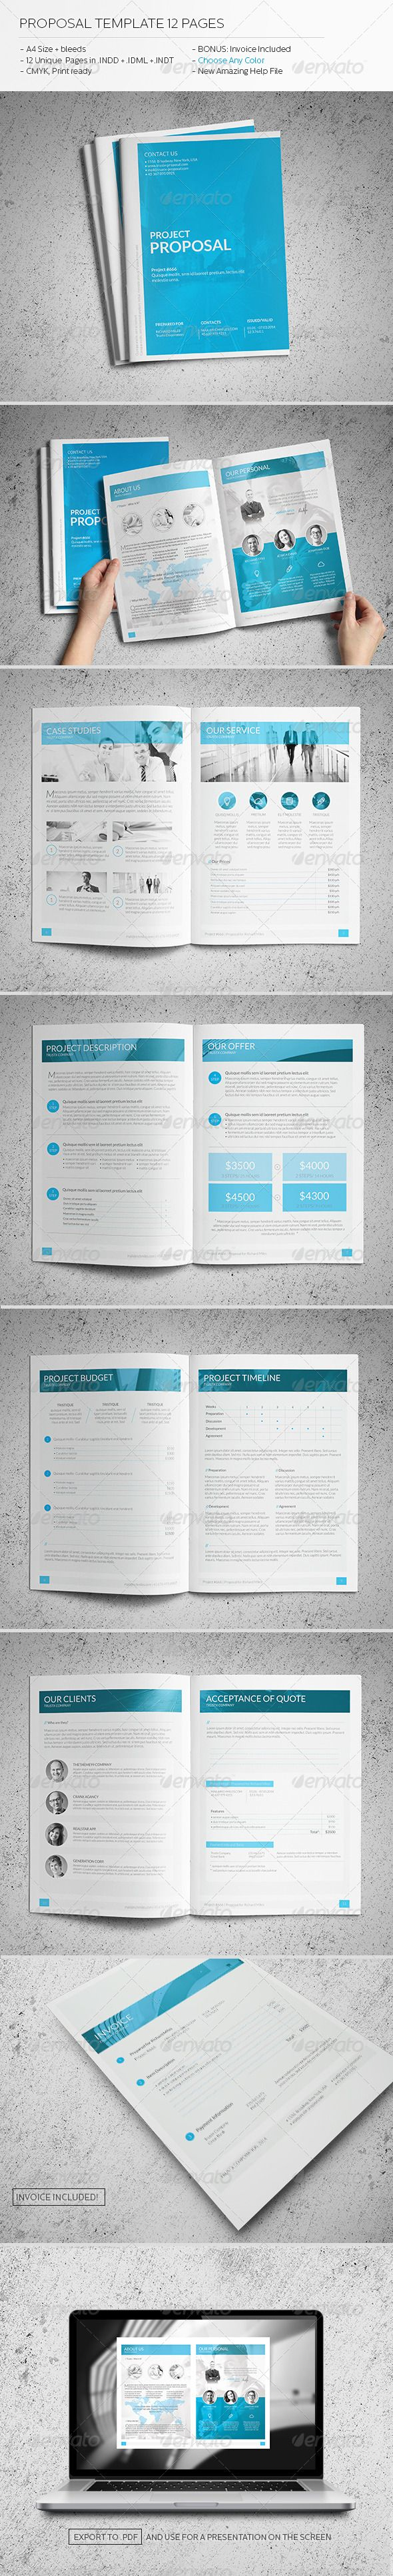 Commercial Proposal Format Prepossessing Commercial Proposal Template #12  Branding  Pinterest  Proposal .